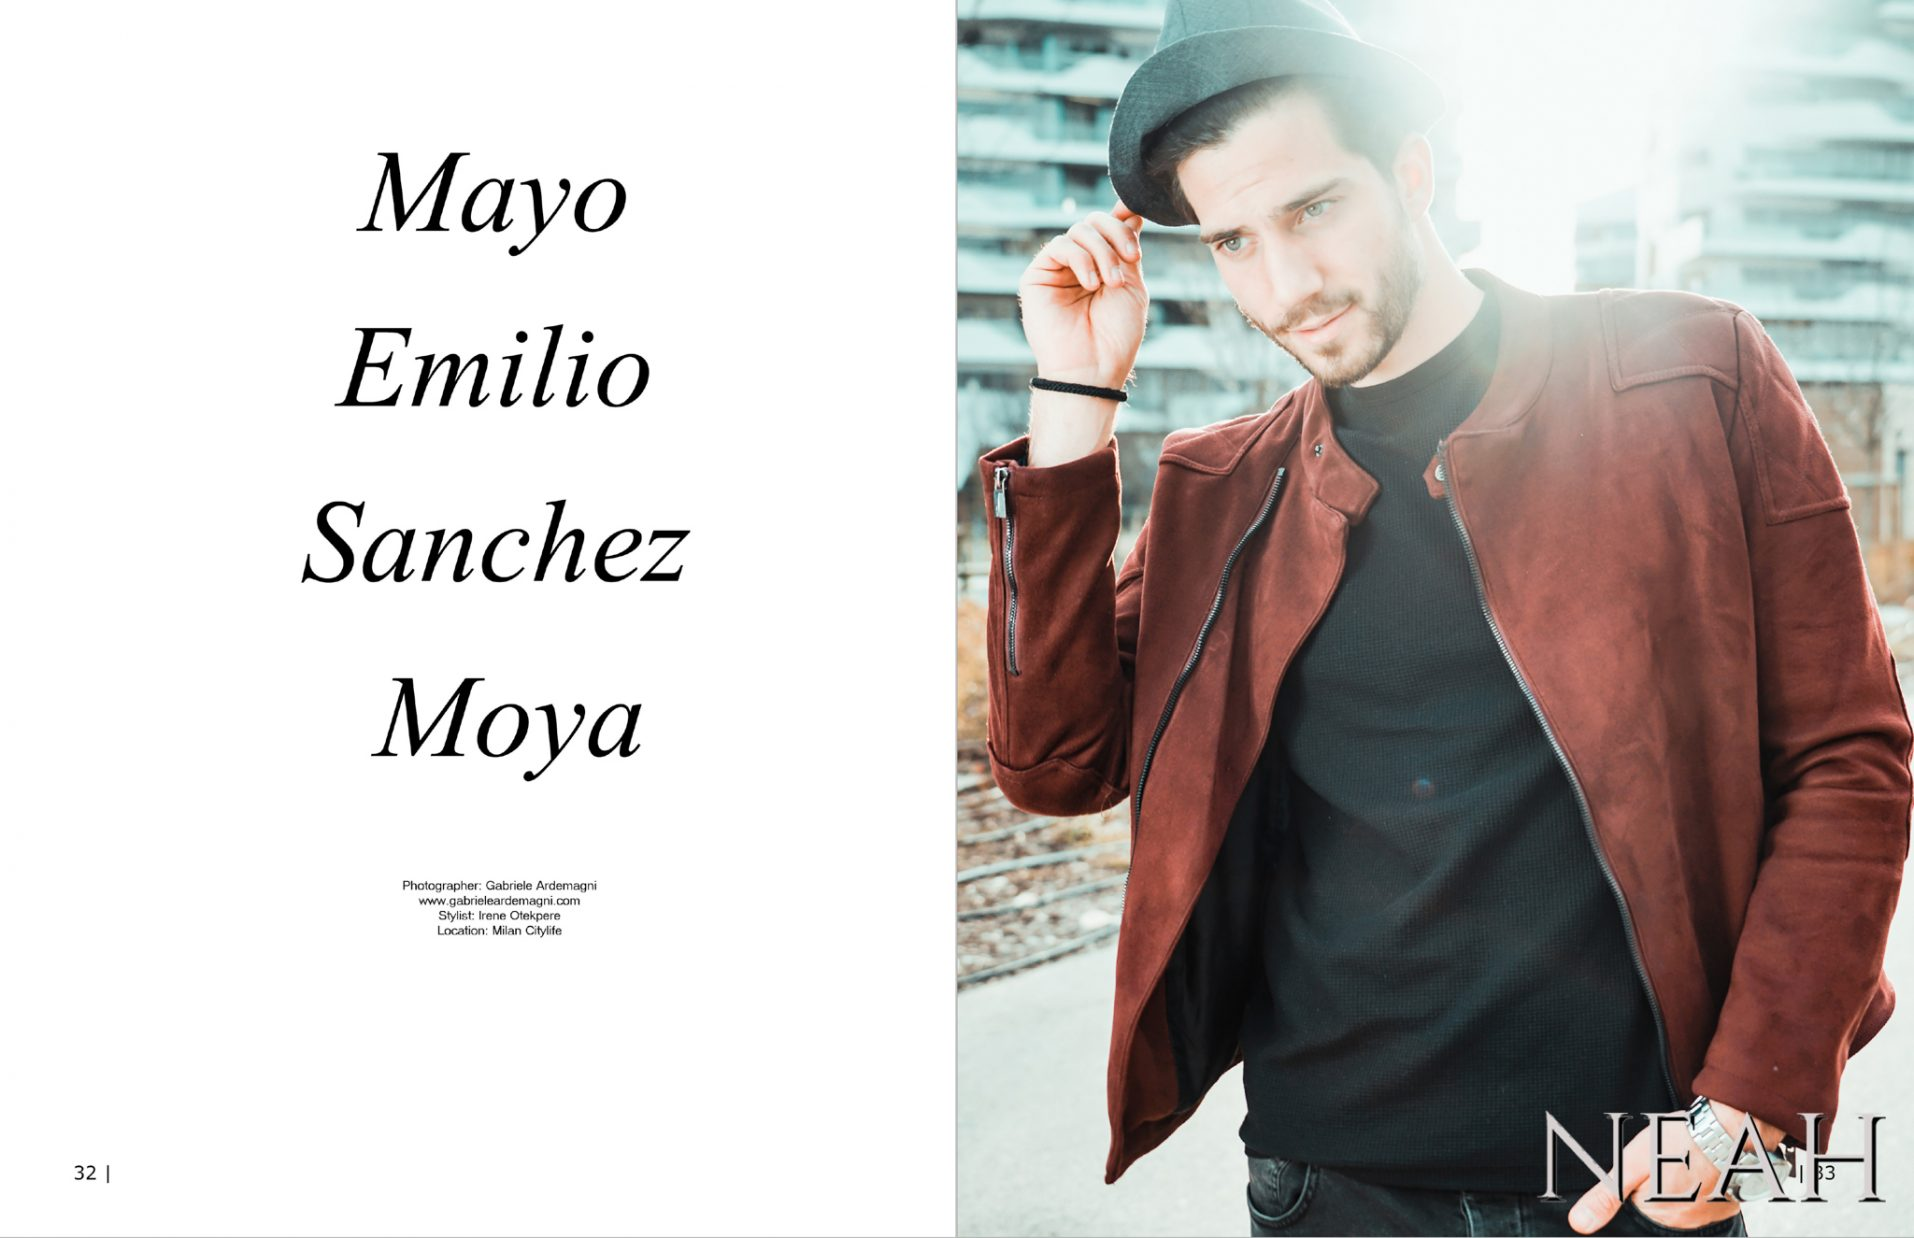 Neah Magazine Oceania #10 May 2017 Photo: www.gabrieleardemagni.com Model: Mayo Emilio Sanchez Moya Mua e Styling: Irene Otekpere Video: Black Diamond Creations